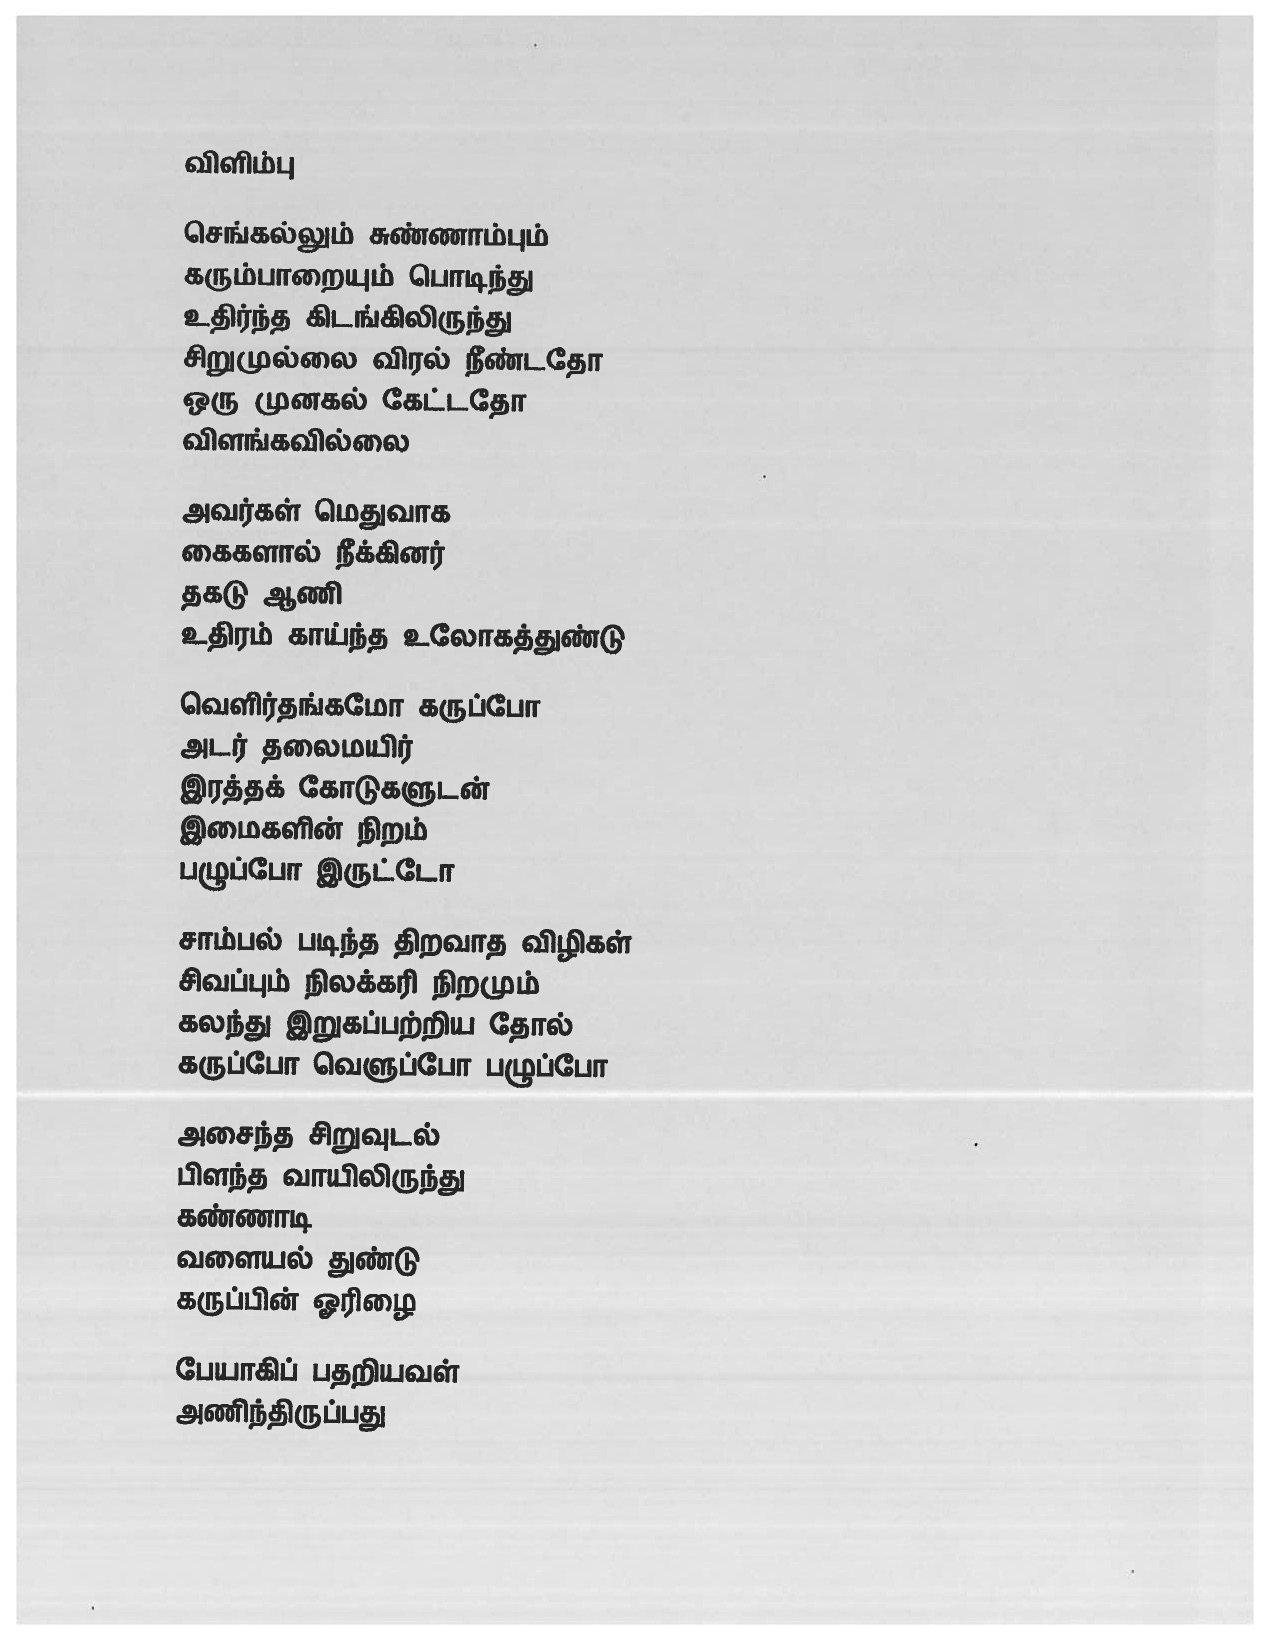 essay about india in tamil Popular searches: thuimai india katturai in tamil, thuimai india katturai in tamil wikipedia, kavathi about thoimai india thittam in tamil, clean india details in tamil language pdf files free download, ariviyal valarchi india in tamil, thuimai katturai pdf, thuimai bharathamt,.